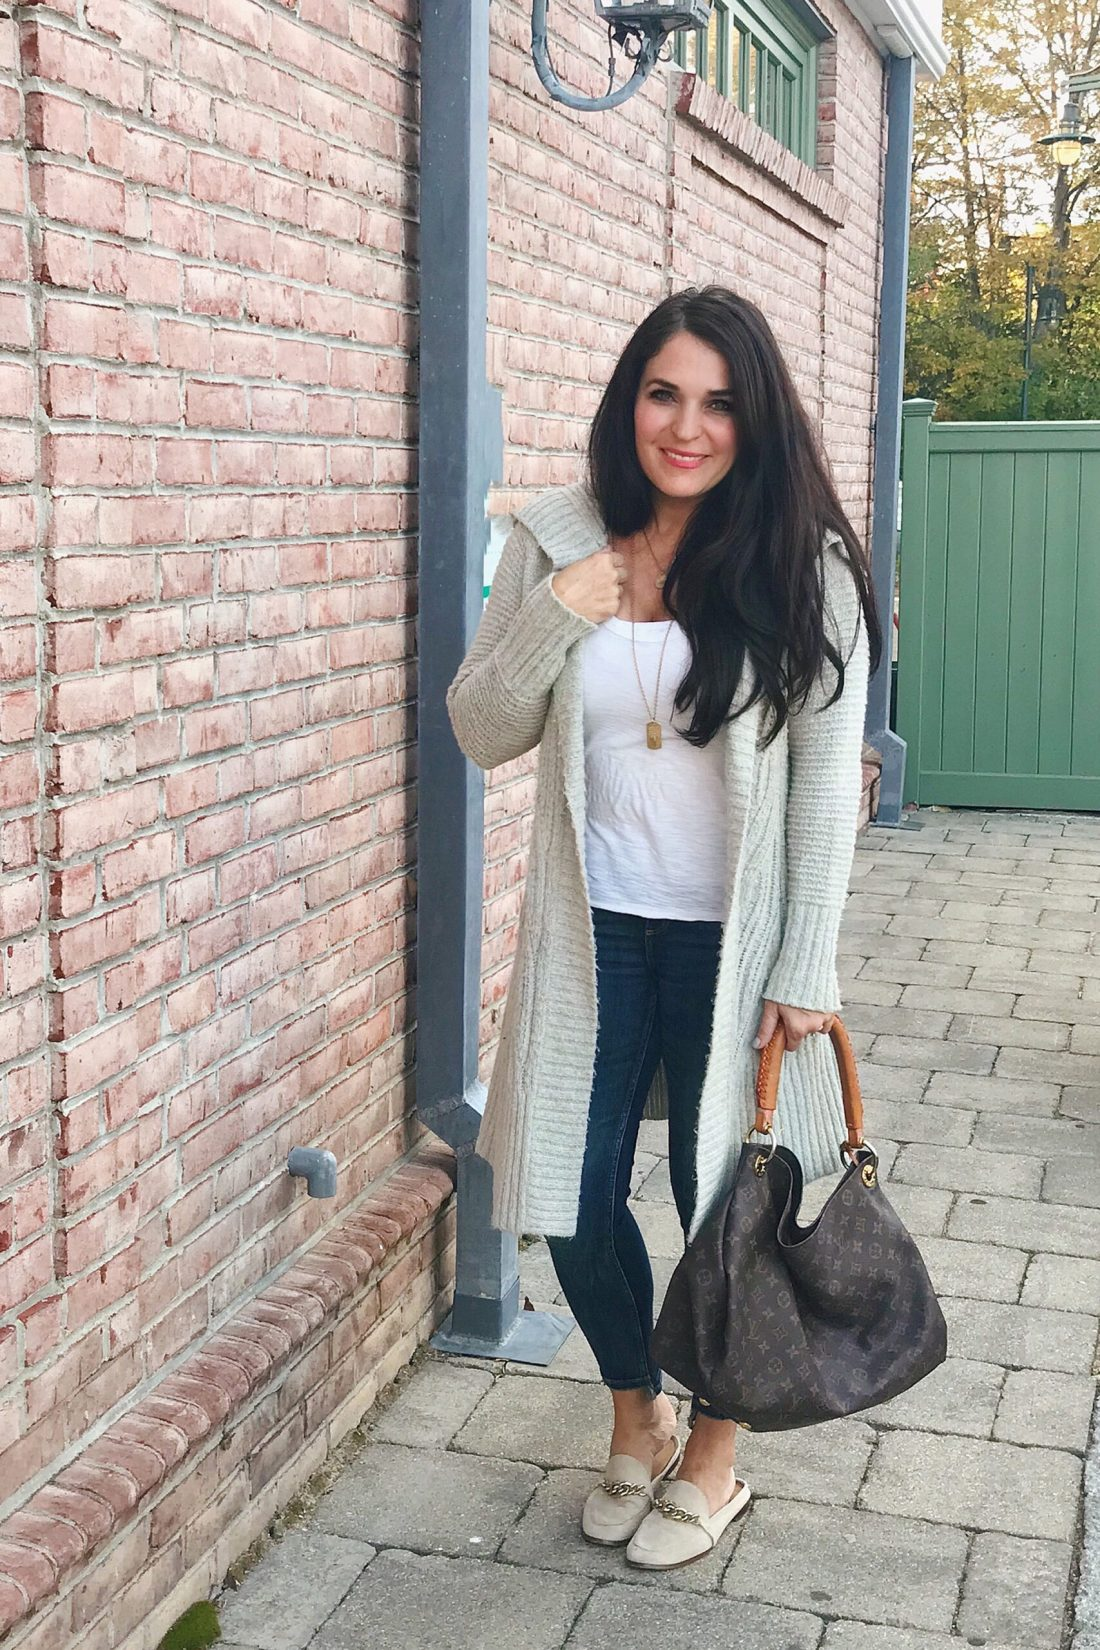 Long cozy cardigan with basic white shirt, jeans and loafer slides, which are discounted at Nordstrom Anniversary Sale picks || Top CT Lifestyle Blogger Darling Darleen